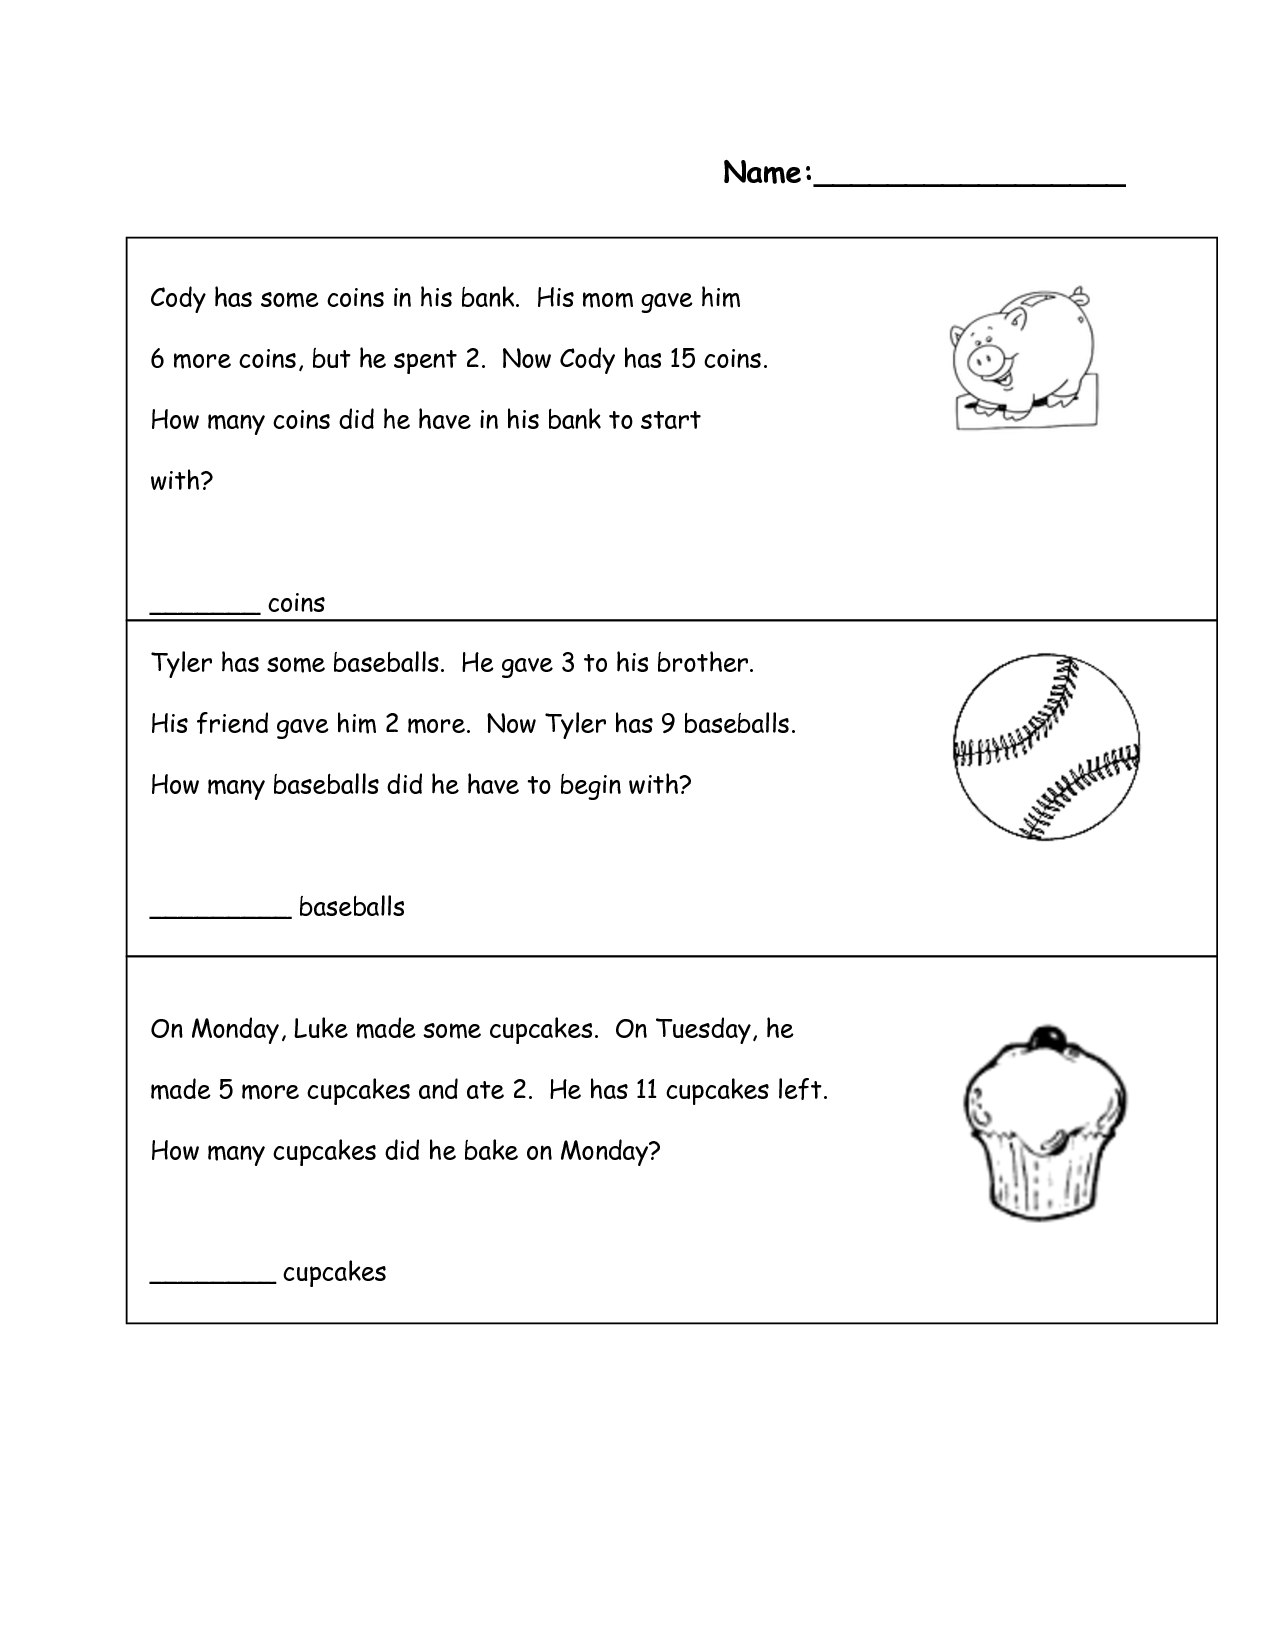 20 Best Images Of Mental Health Worksheets For Teens